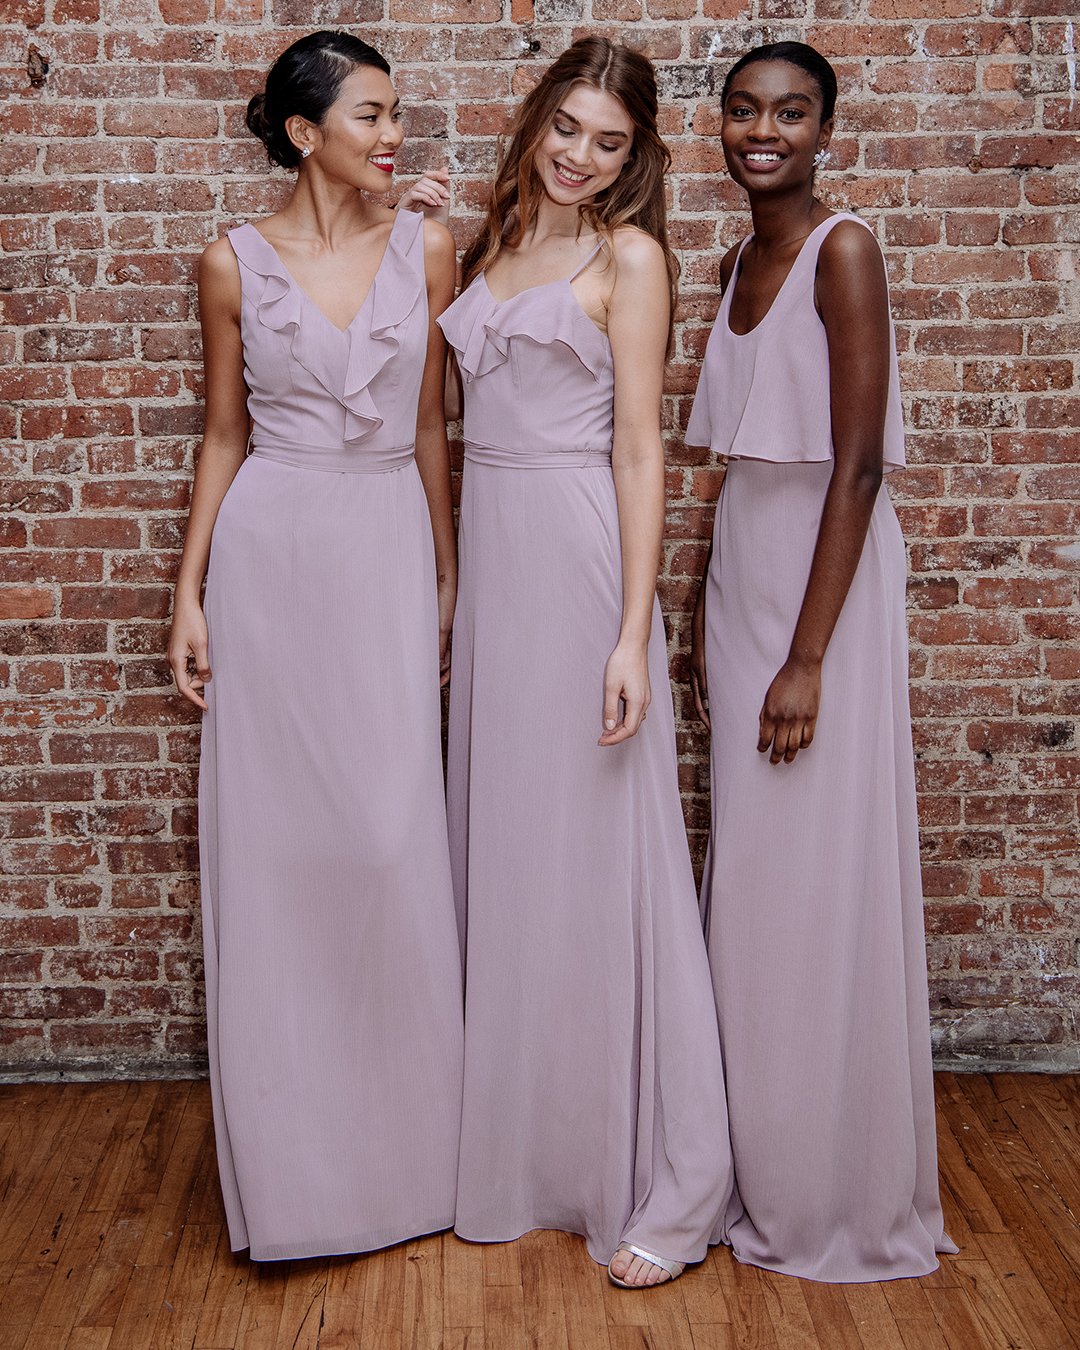 2019 Spring Bridesmaid Dresses | Ruffles (and under $100!)